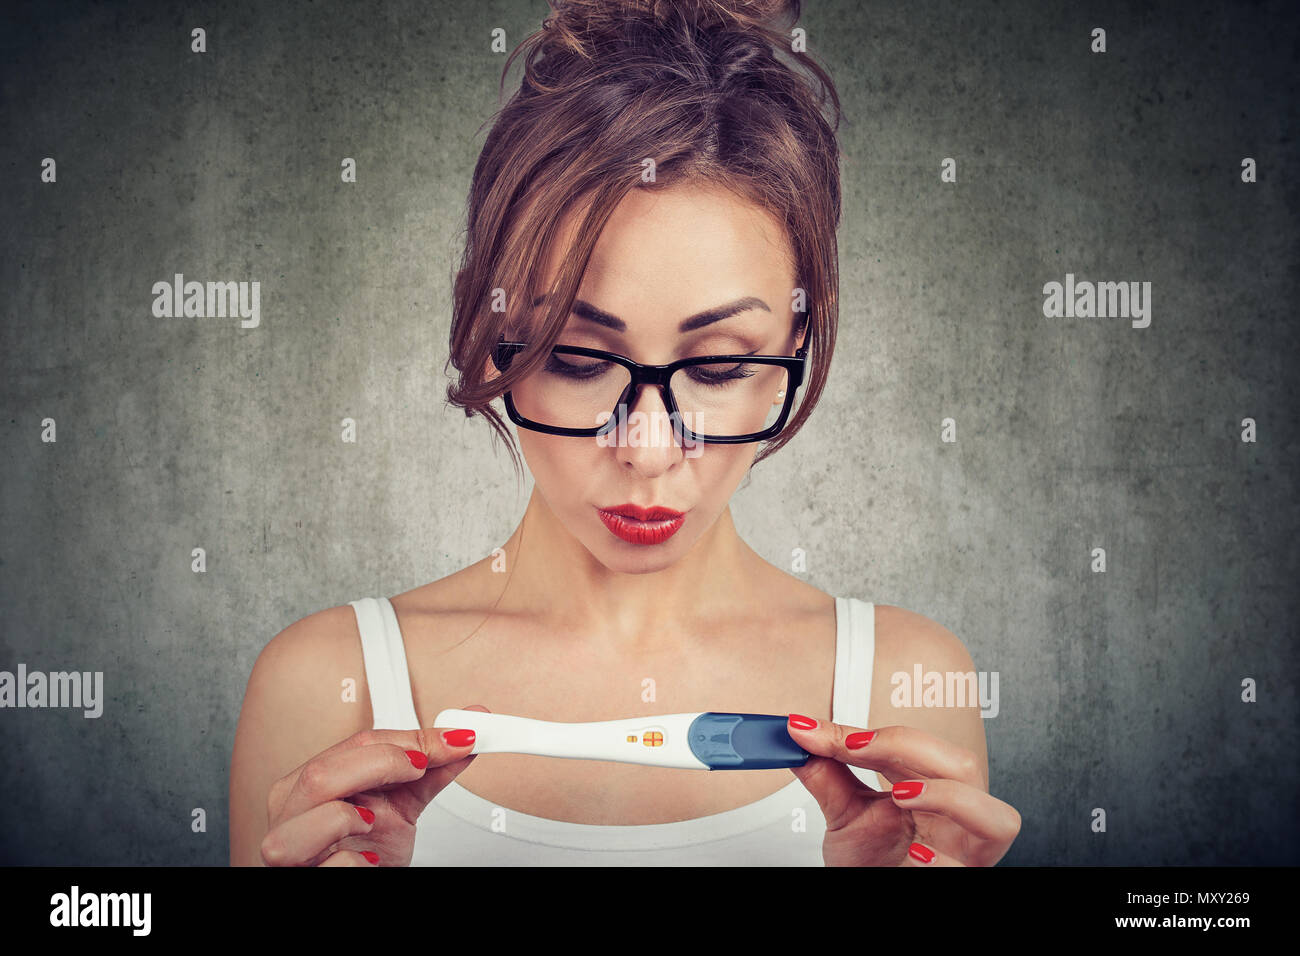 Young woman shocked cannot believe her eyes while checking positive pregnancy test - Stock Image